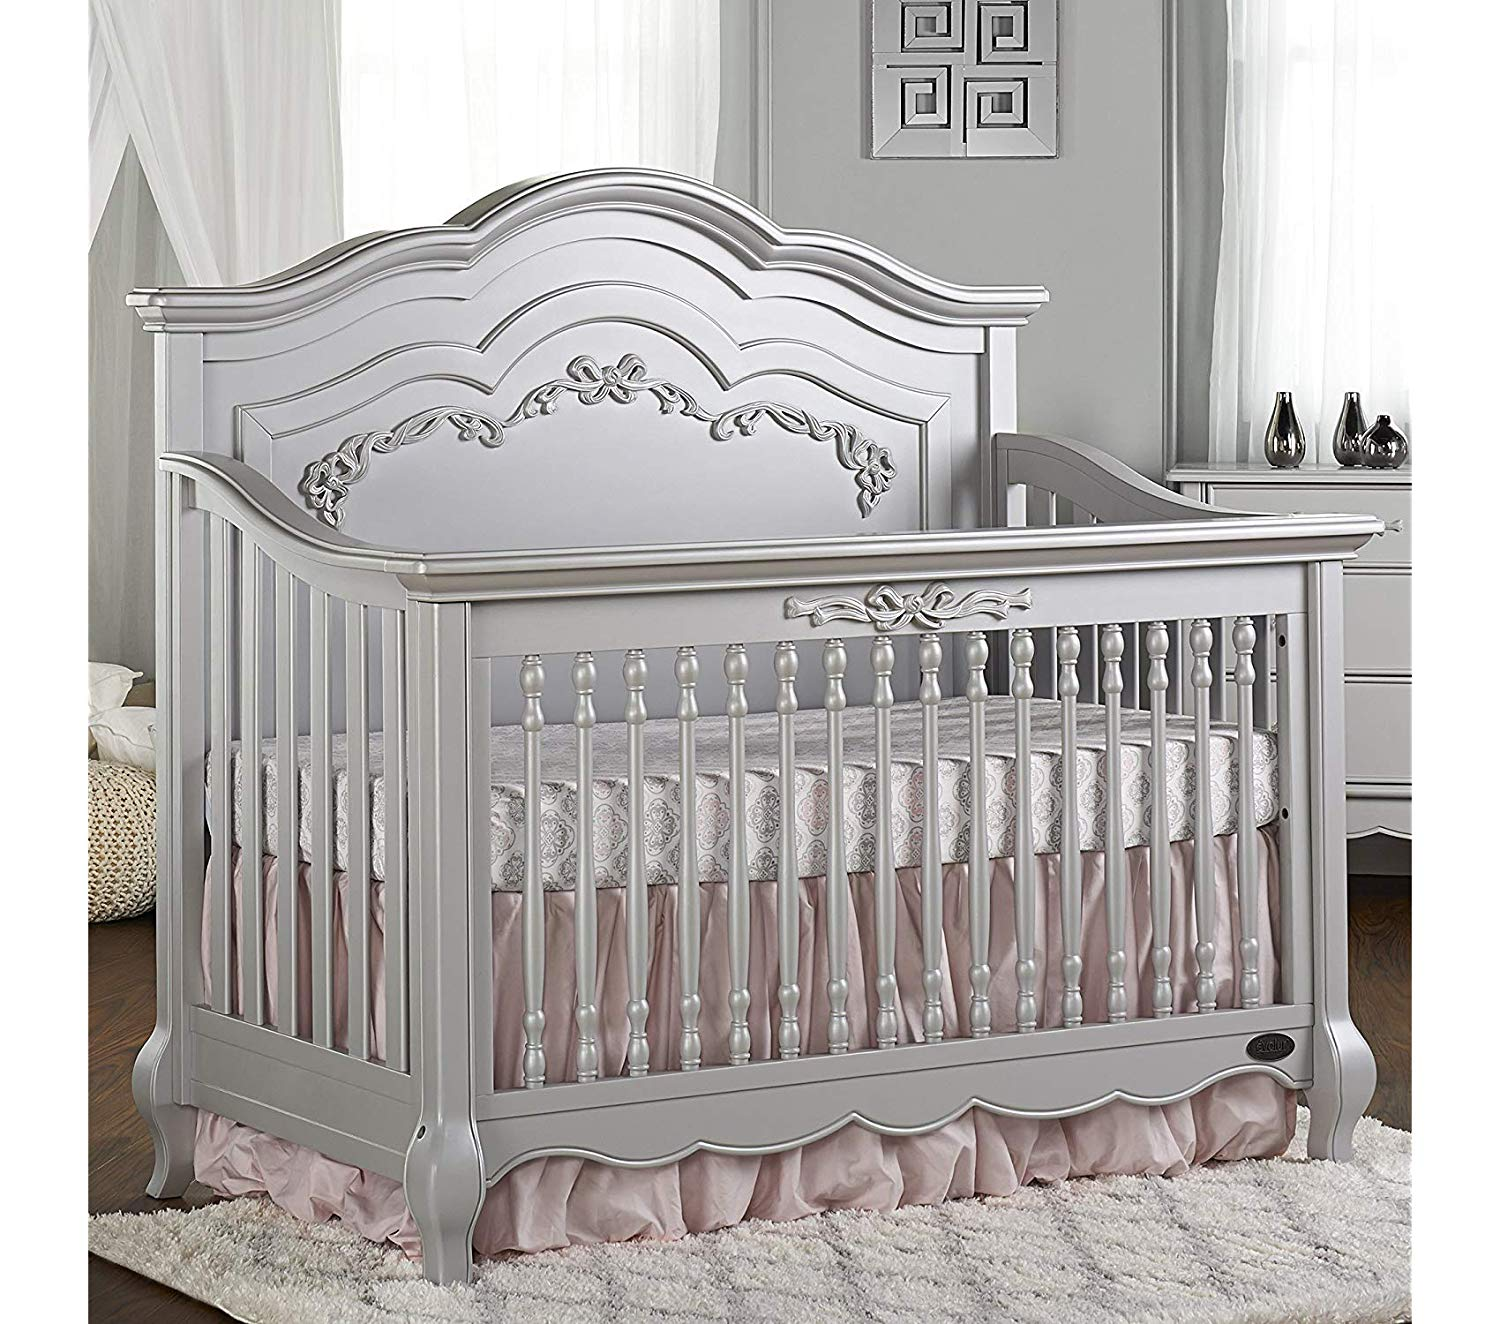 Еvоlur Deluxe Premium Collection 5-in-1 Convertible Crib Ivory Lace